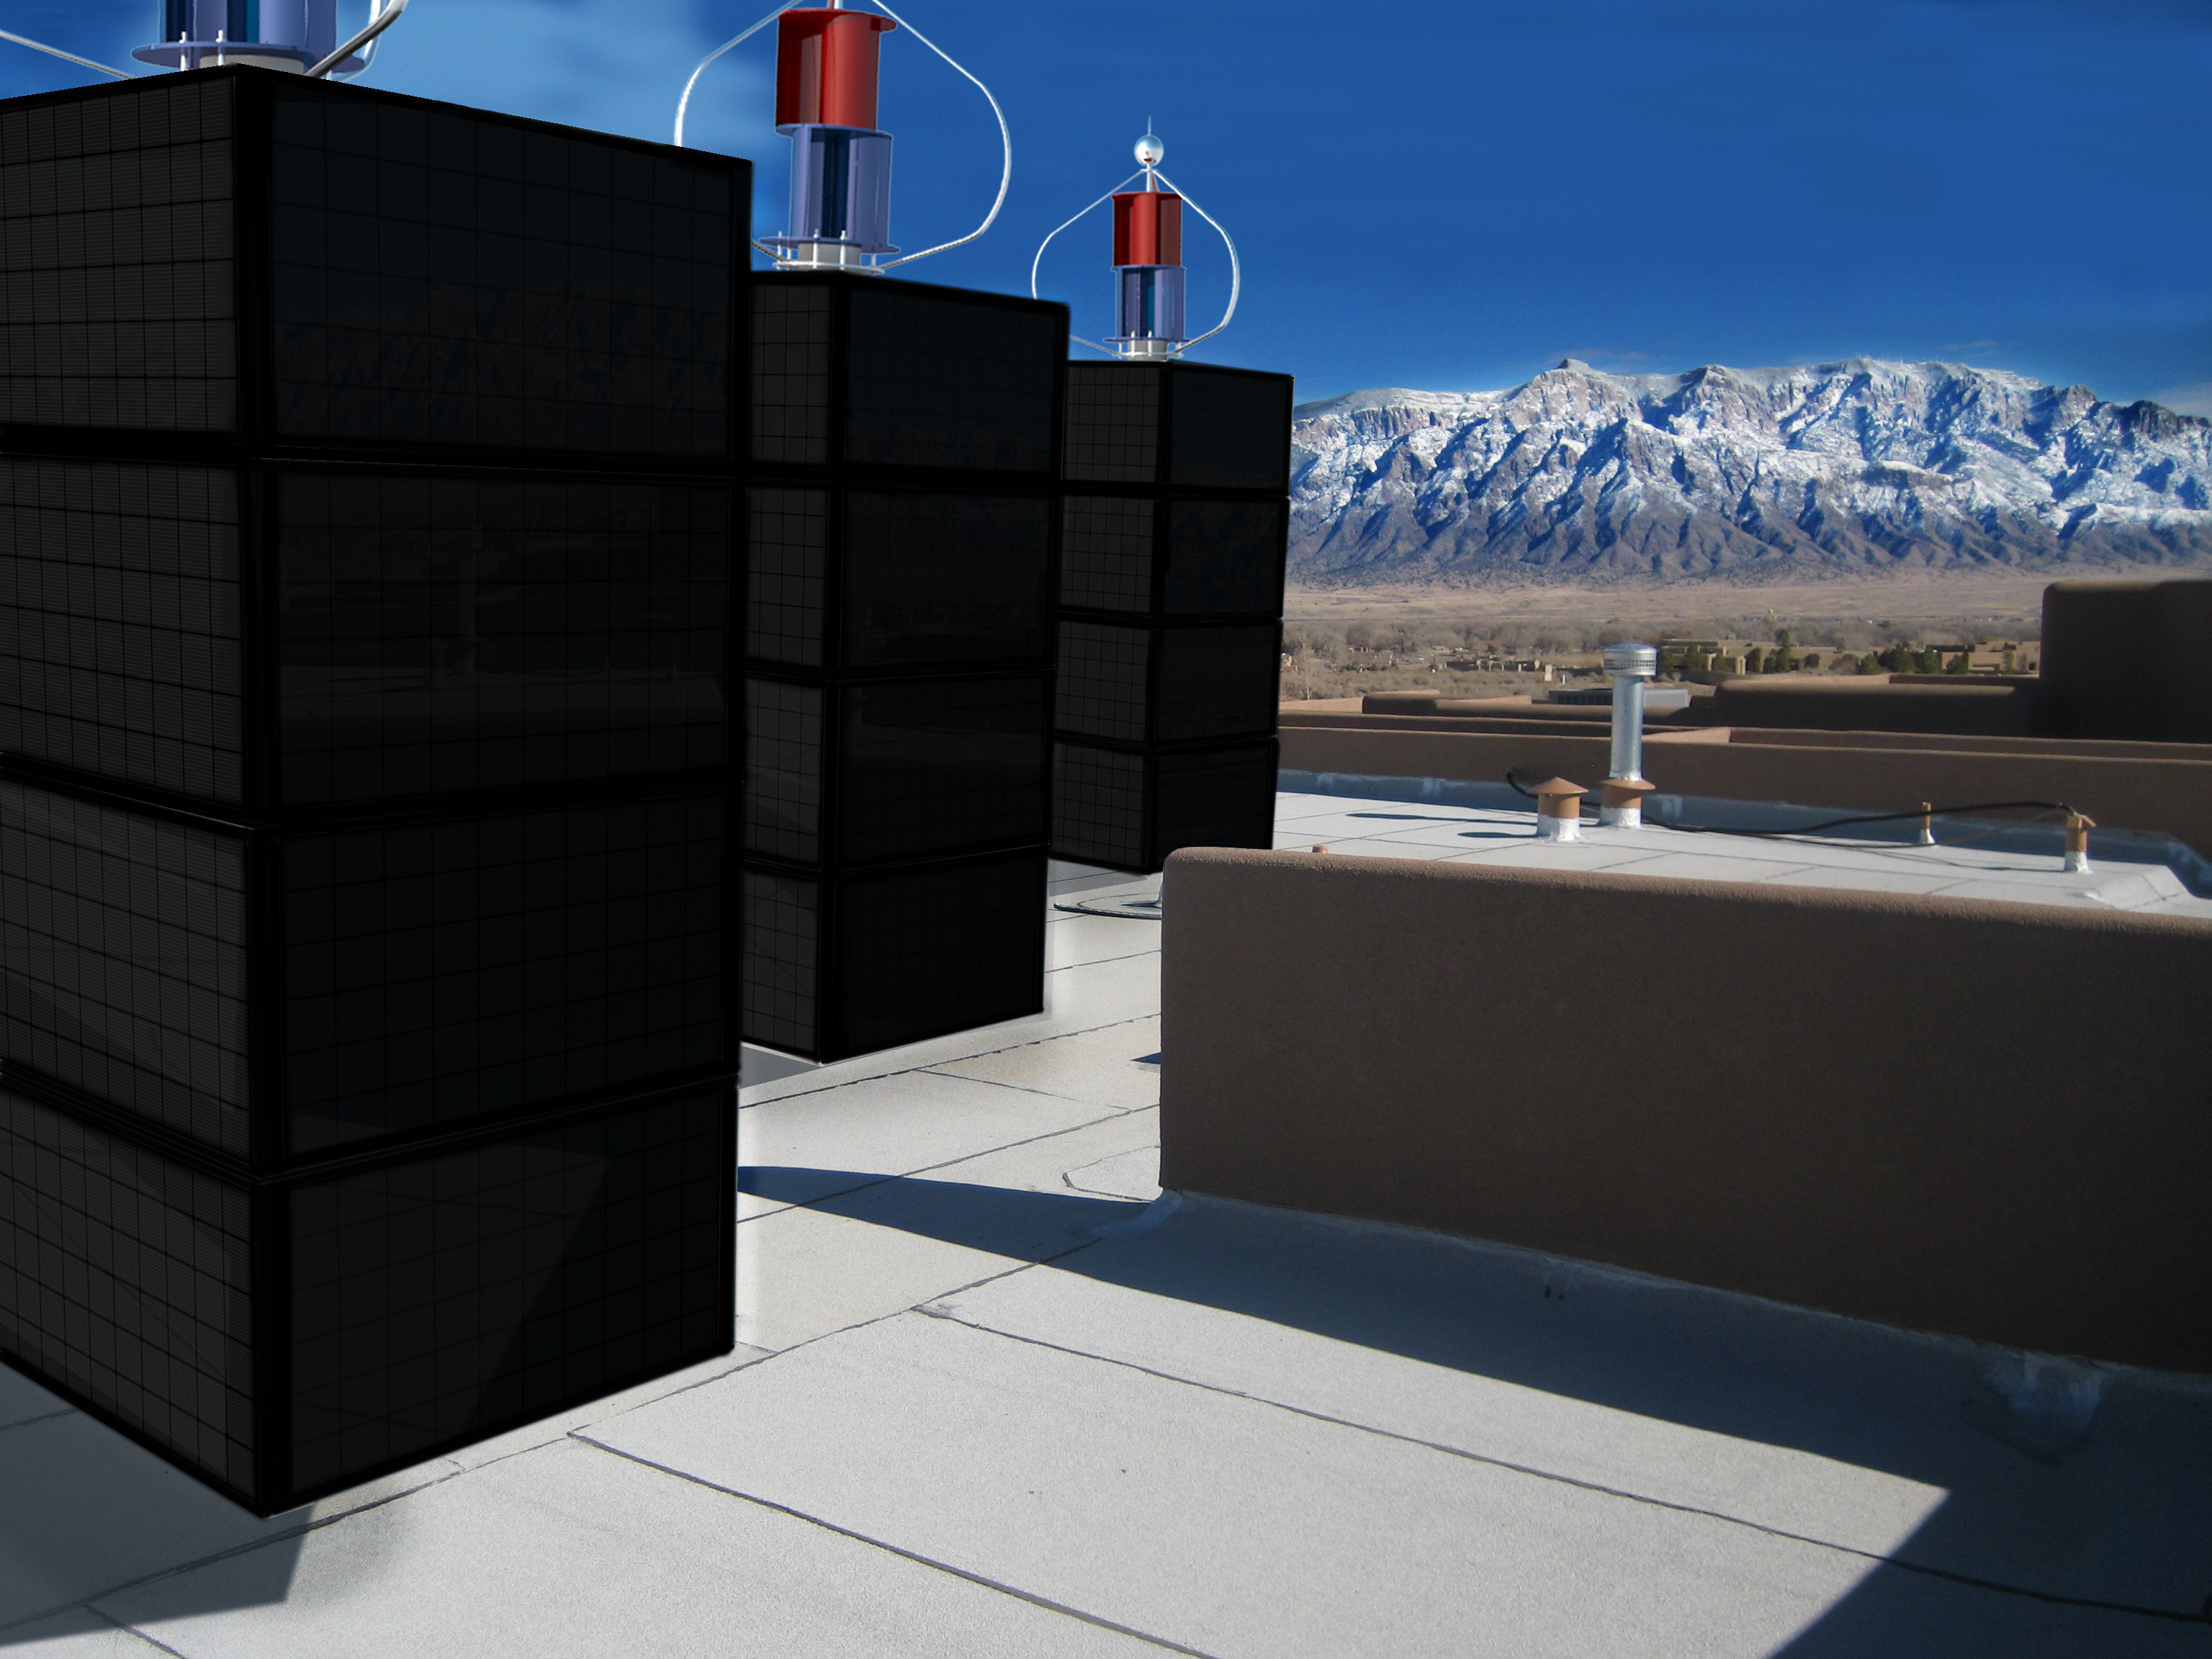 myPowerTower.org by cleantech-shop.org some on the roof of a building with black solarpannels and wind-system